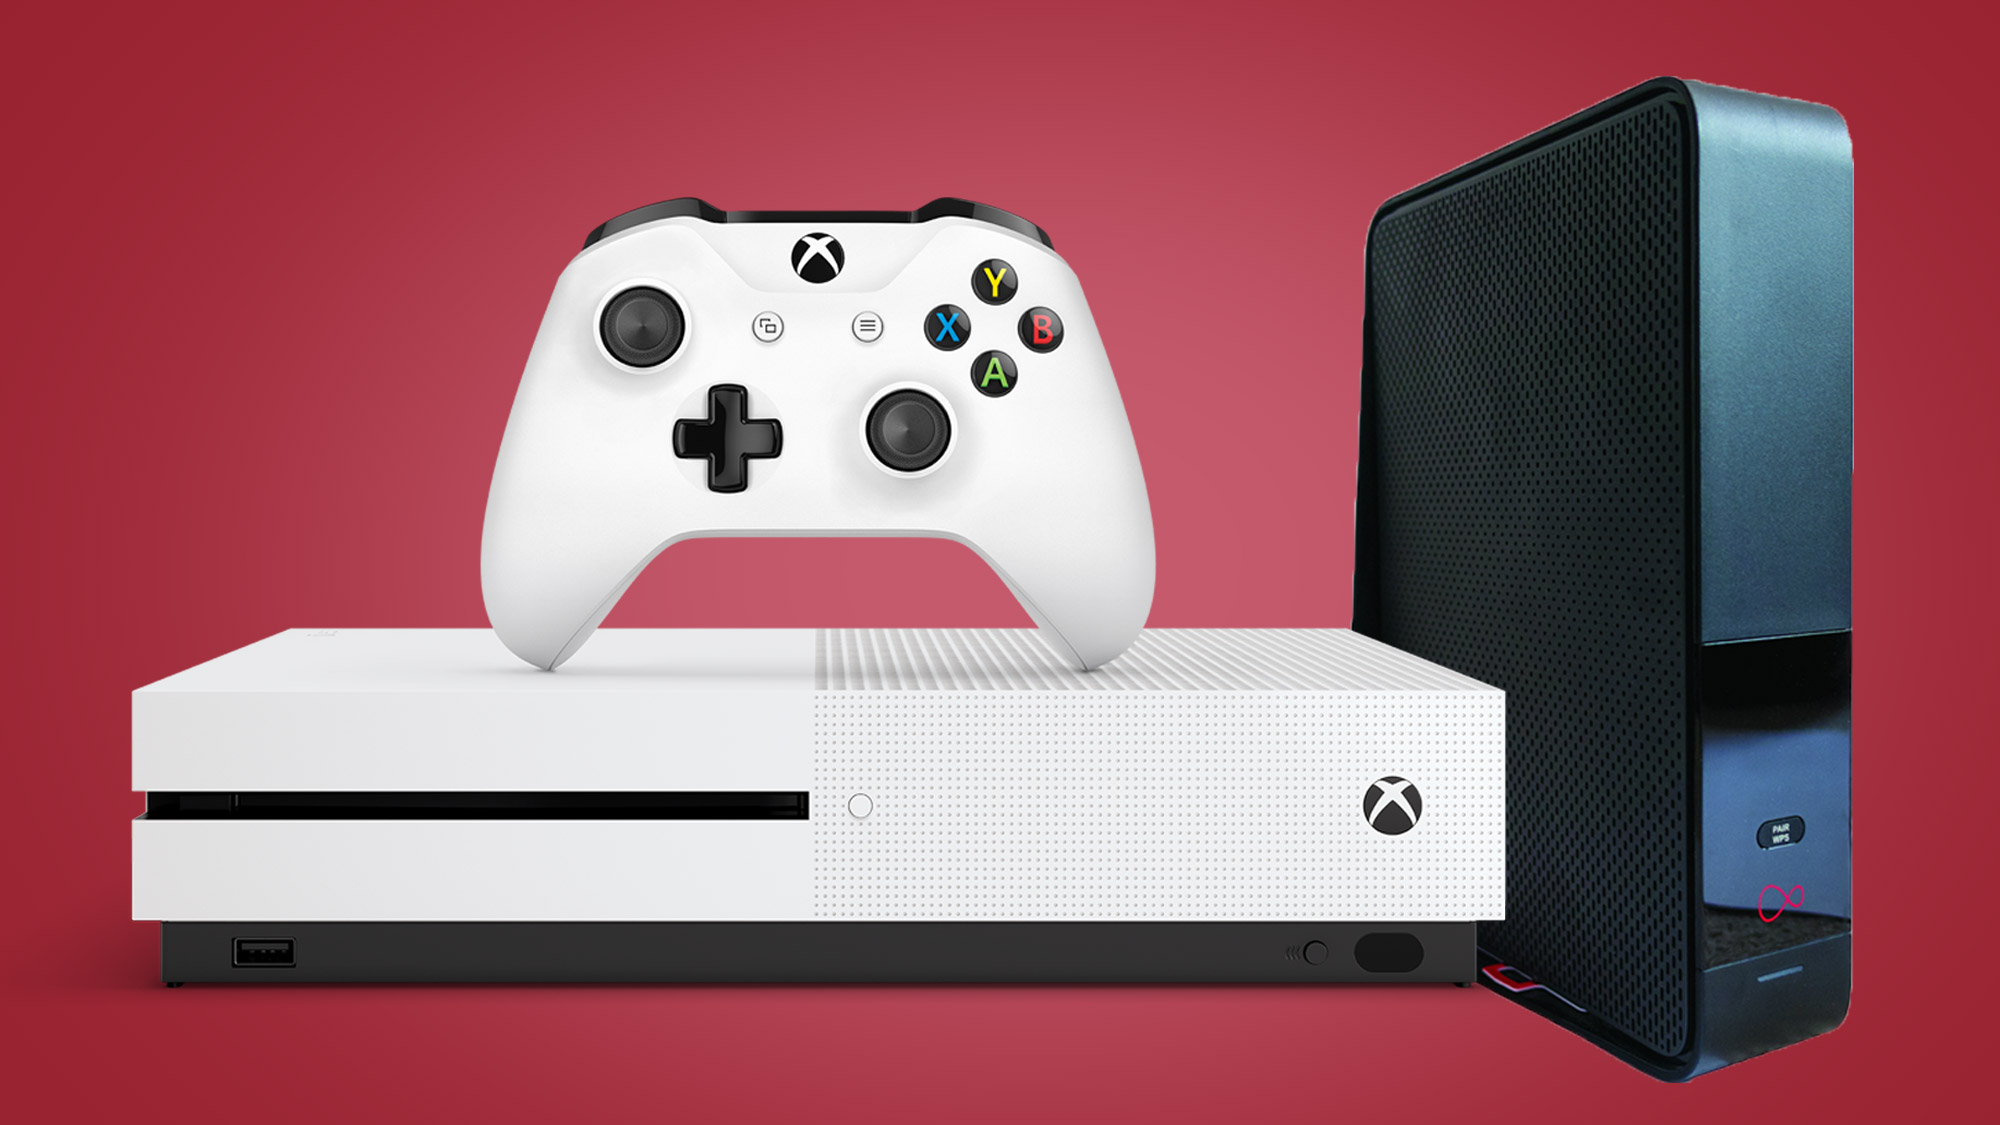 Virgin's biggest and best broadband and TV deal now comes with a free Xbox One S too